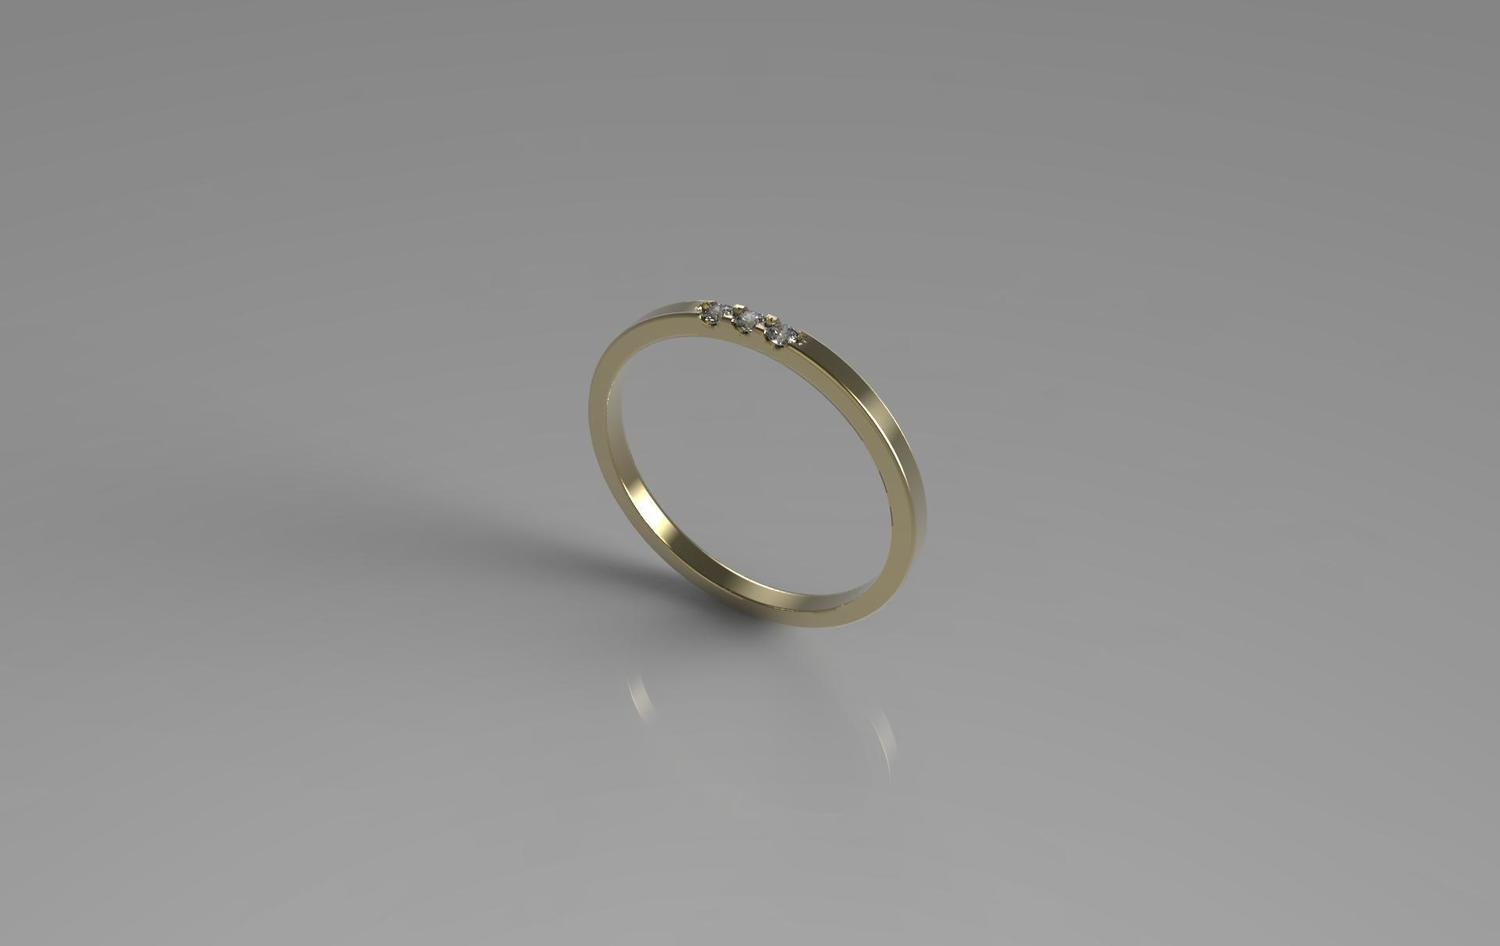 3d jewelry  model of 3 stones wedding ring, (size 8 US)